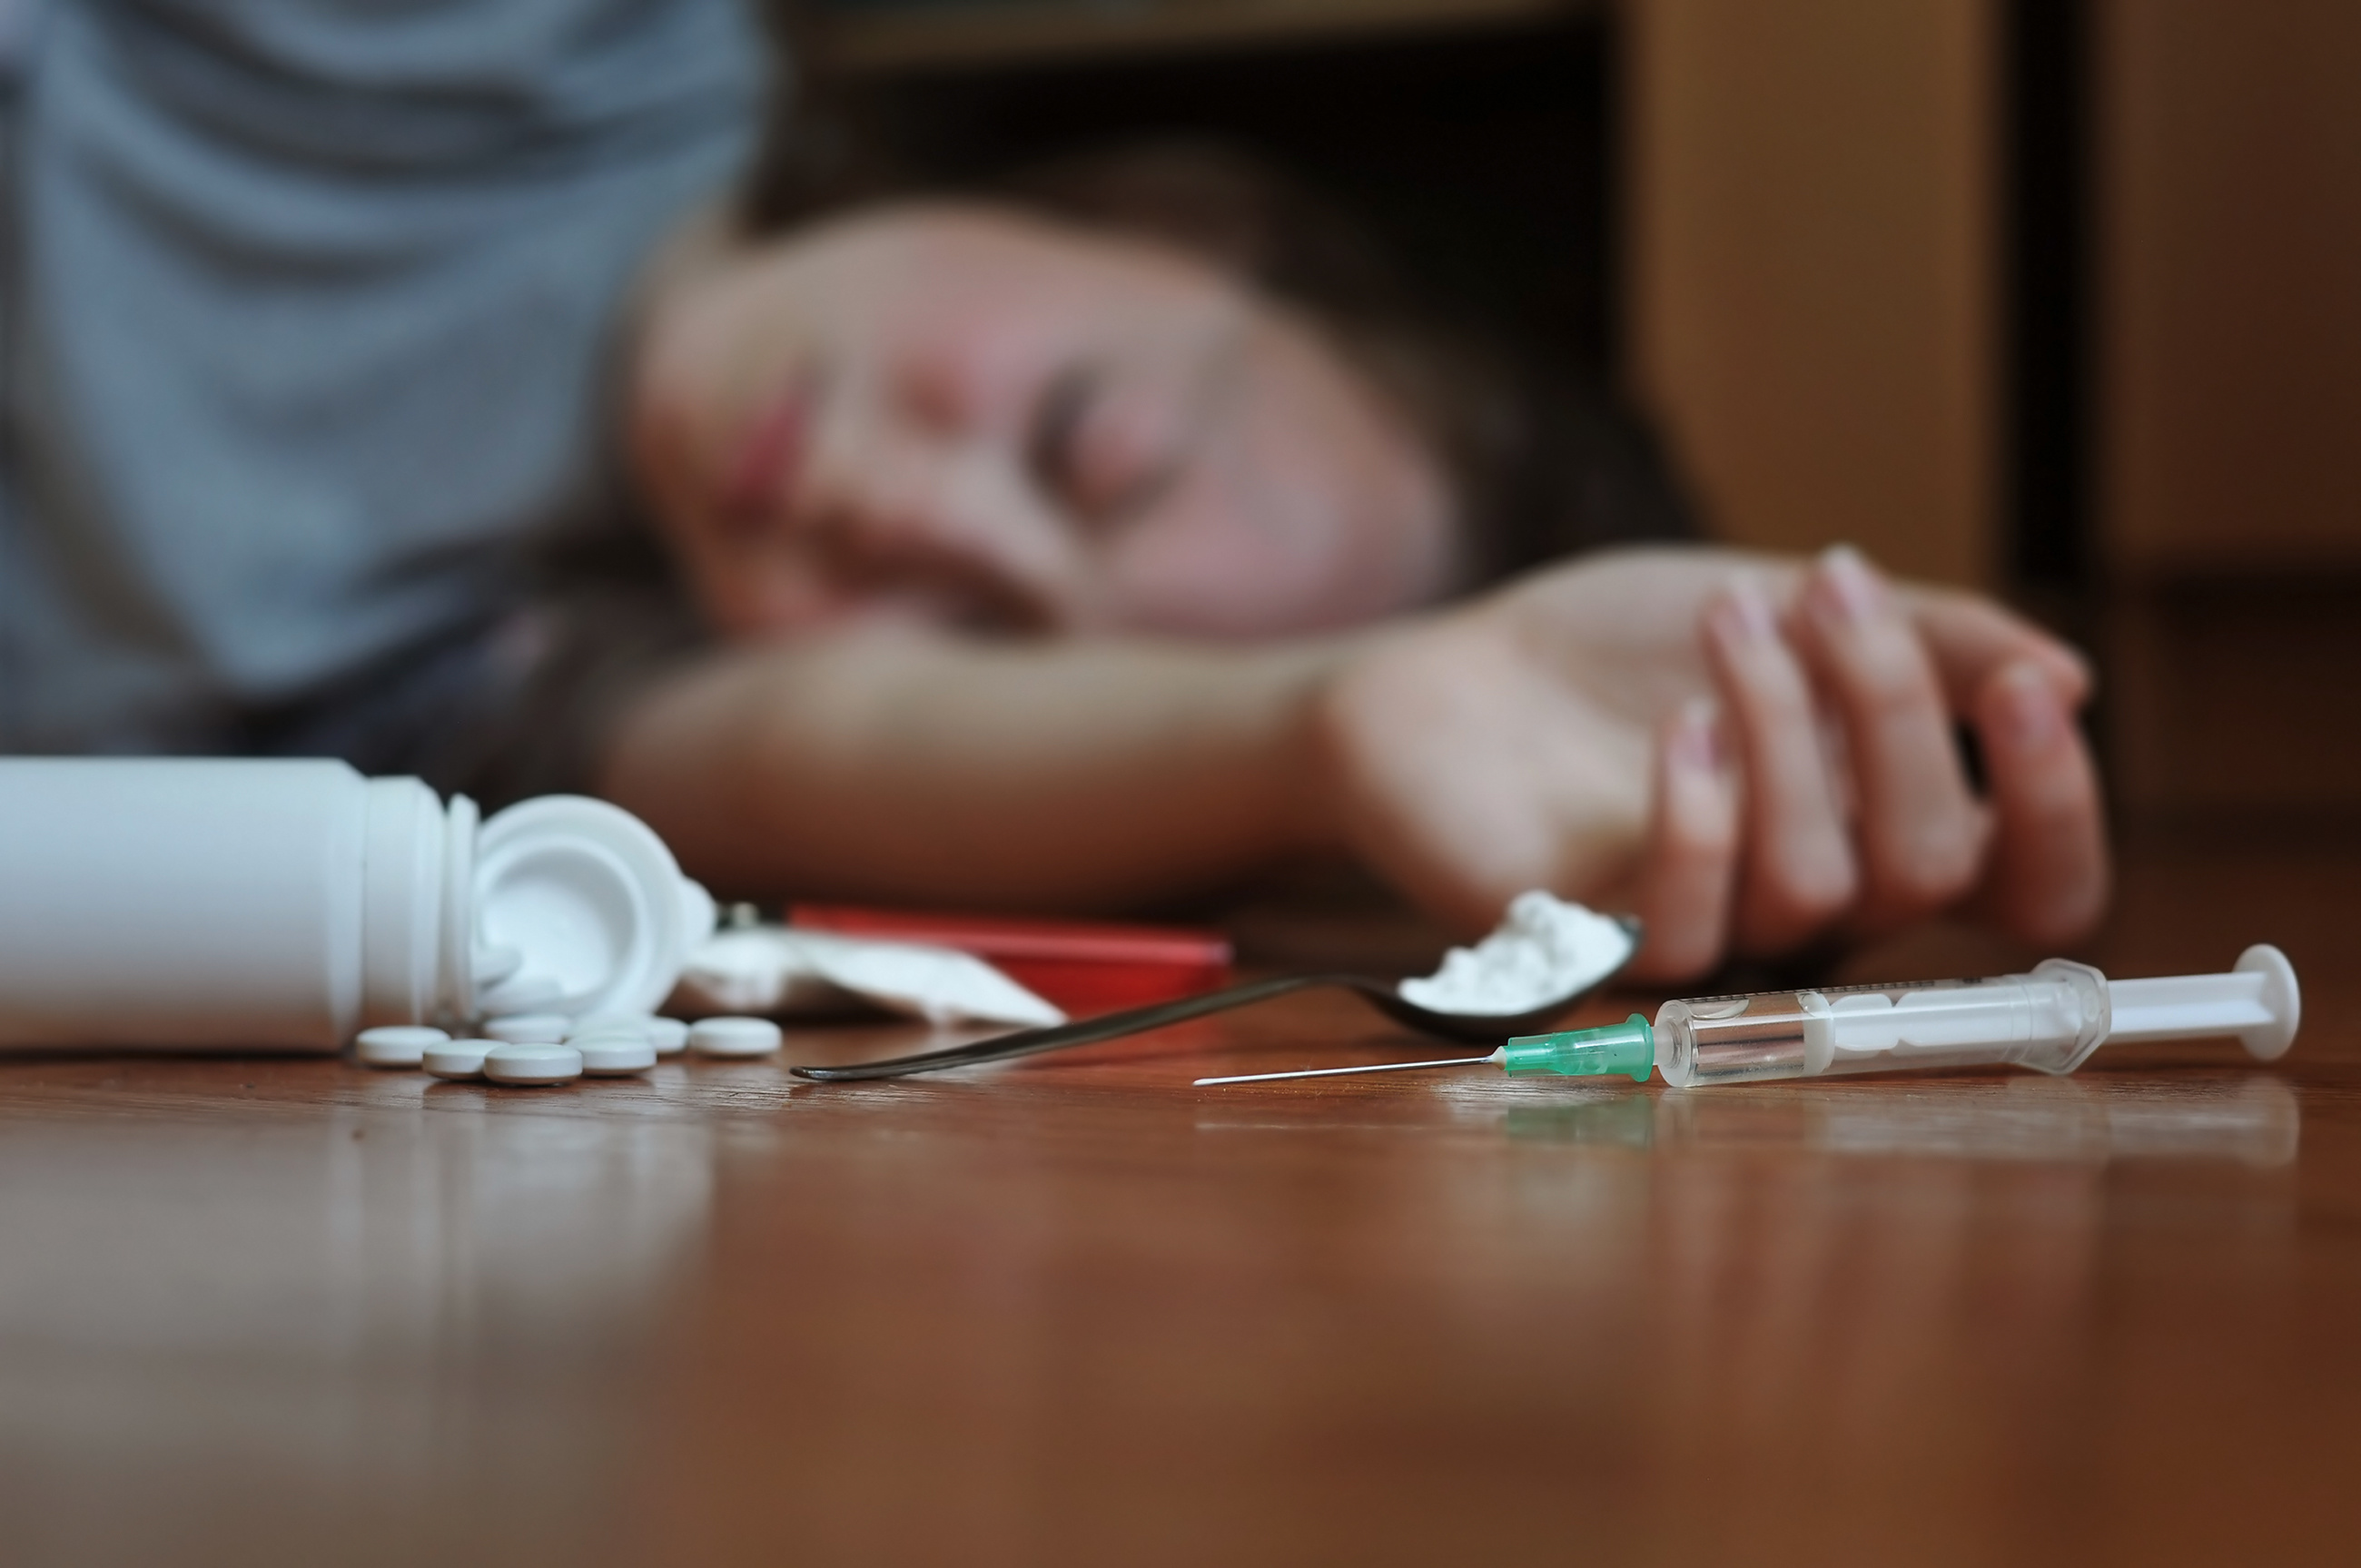 drug addict on floor with drugs